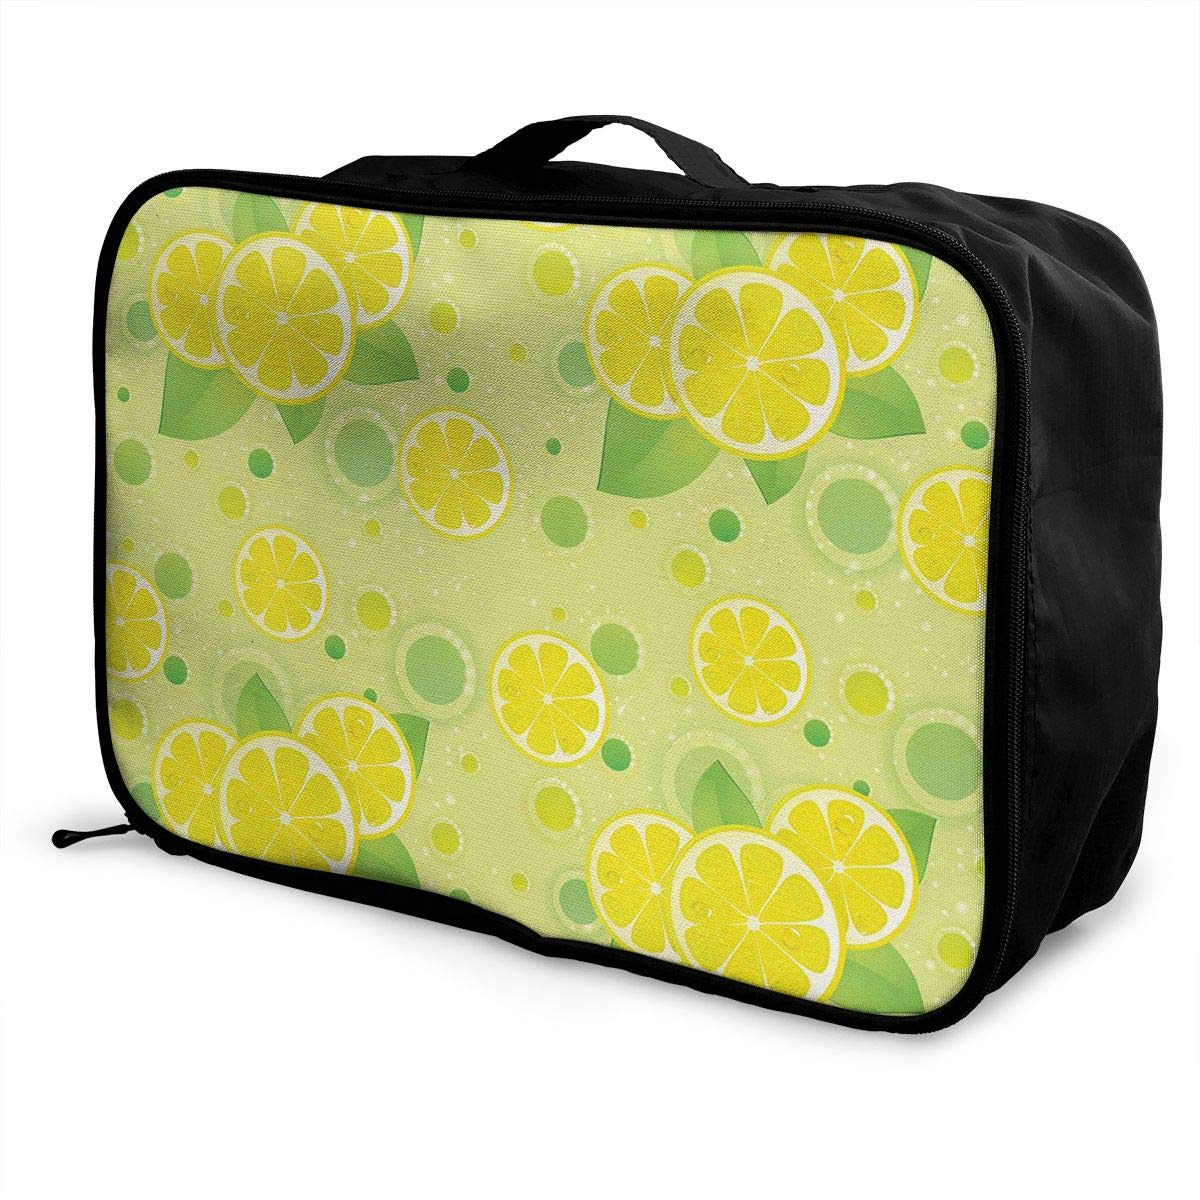 ADGAI Lemon Lime Pattern in Retro Vintage Canvas Travel Weekender Bag,Fashion Custom Lightweight Large Capacity Portable Luggage Bag,Suitcase Trolley Bag